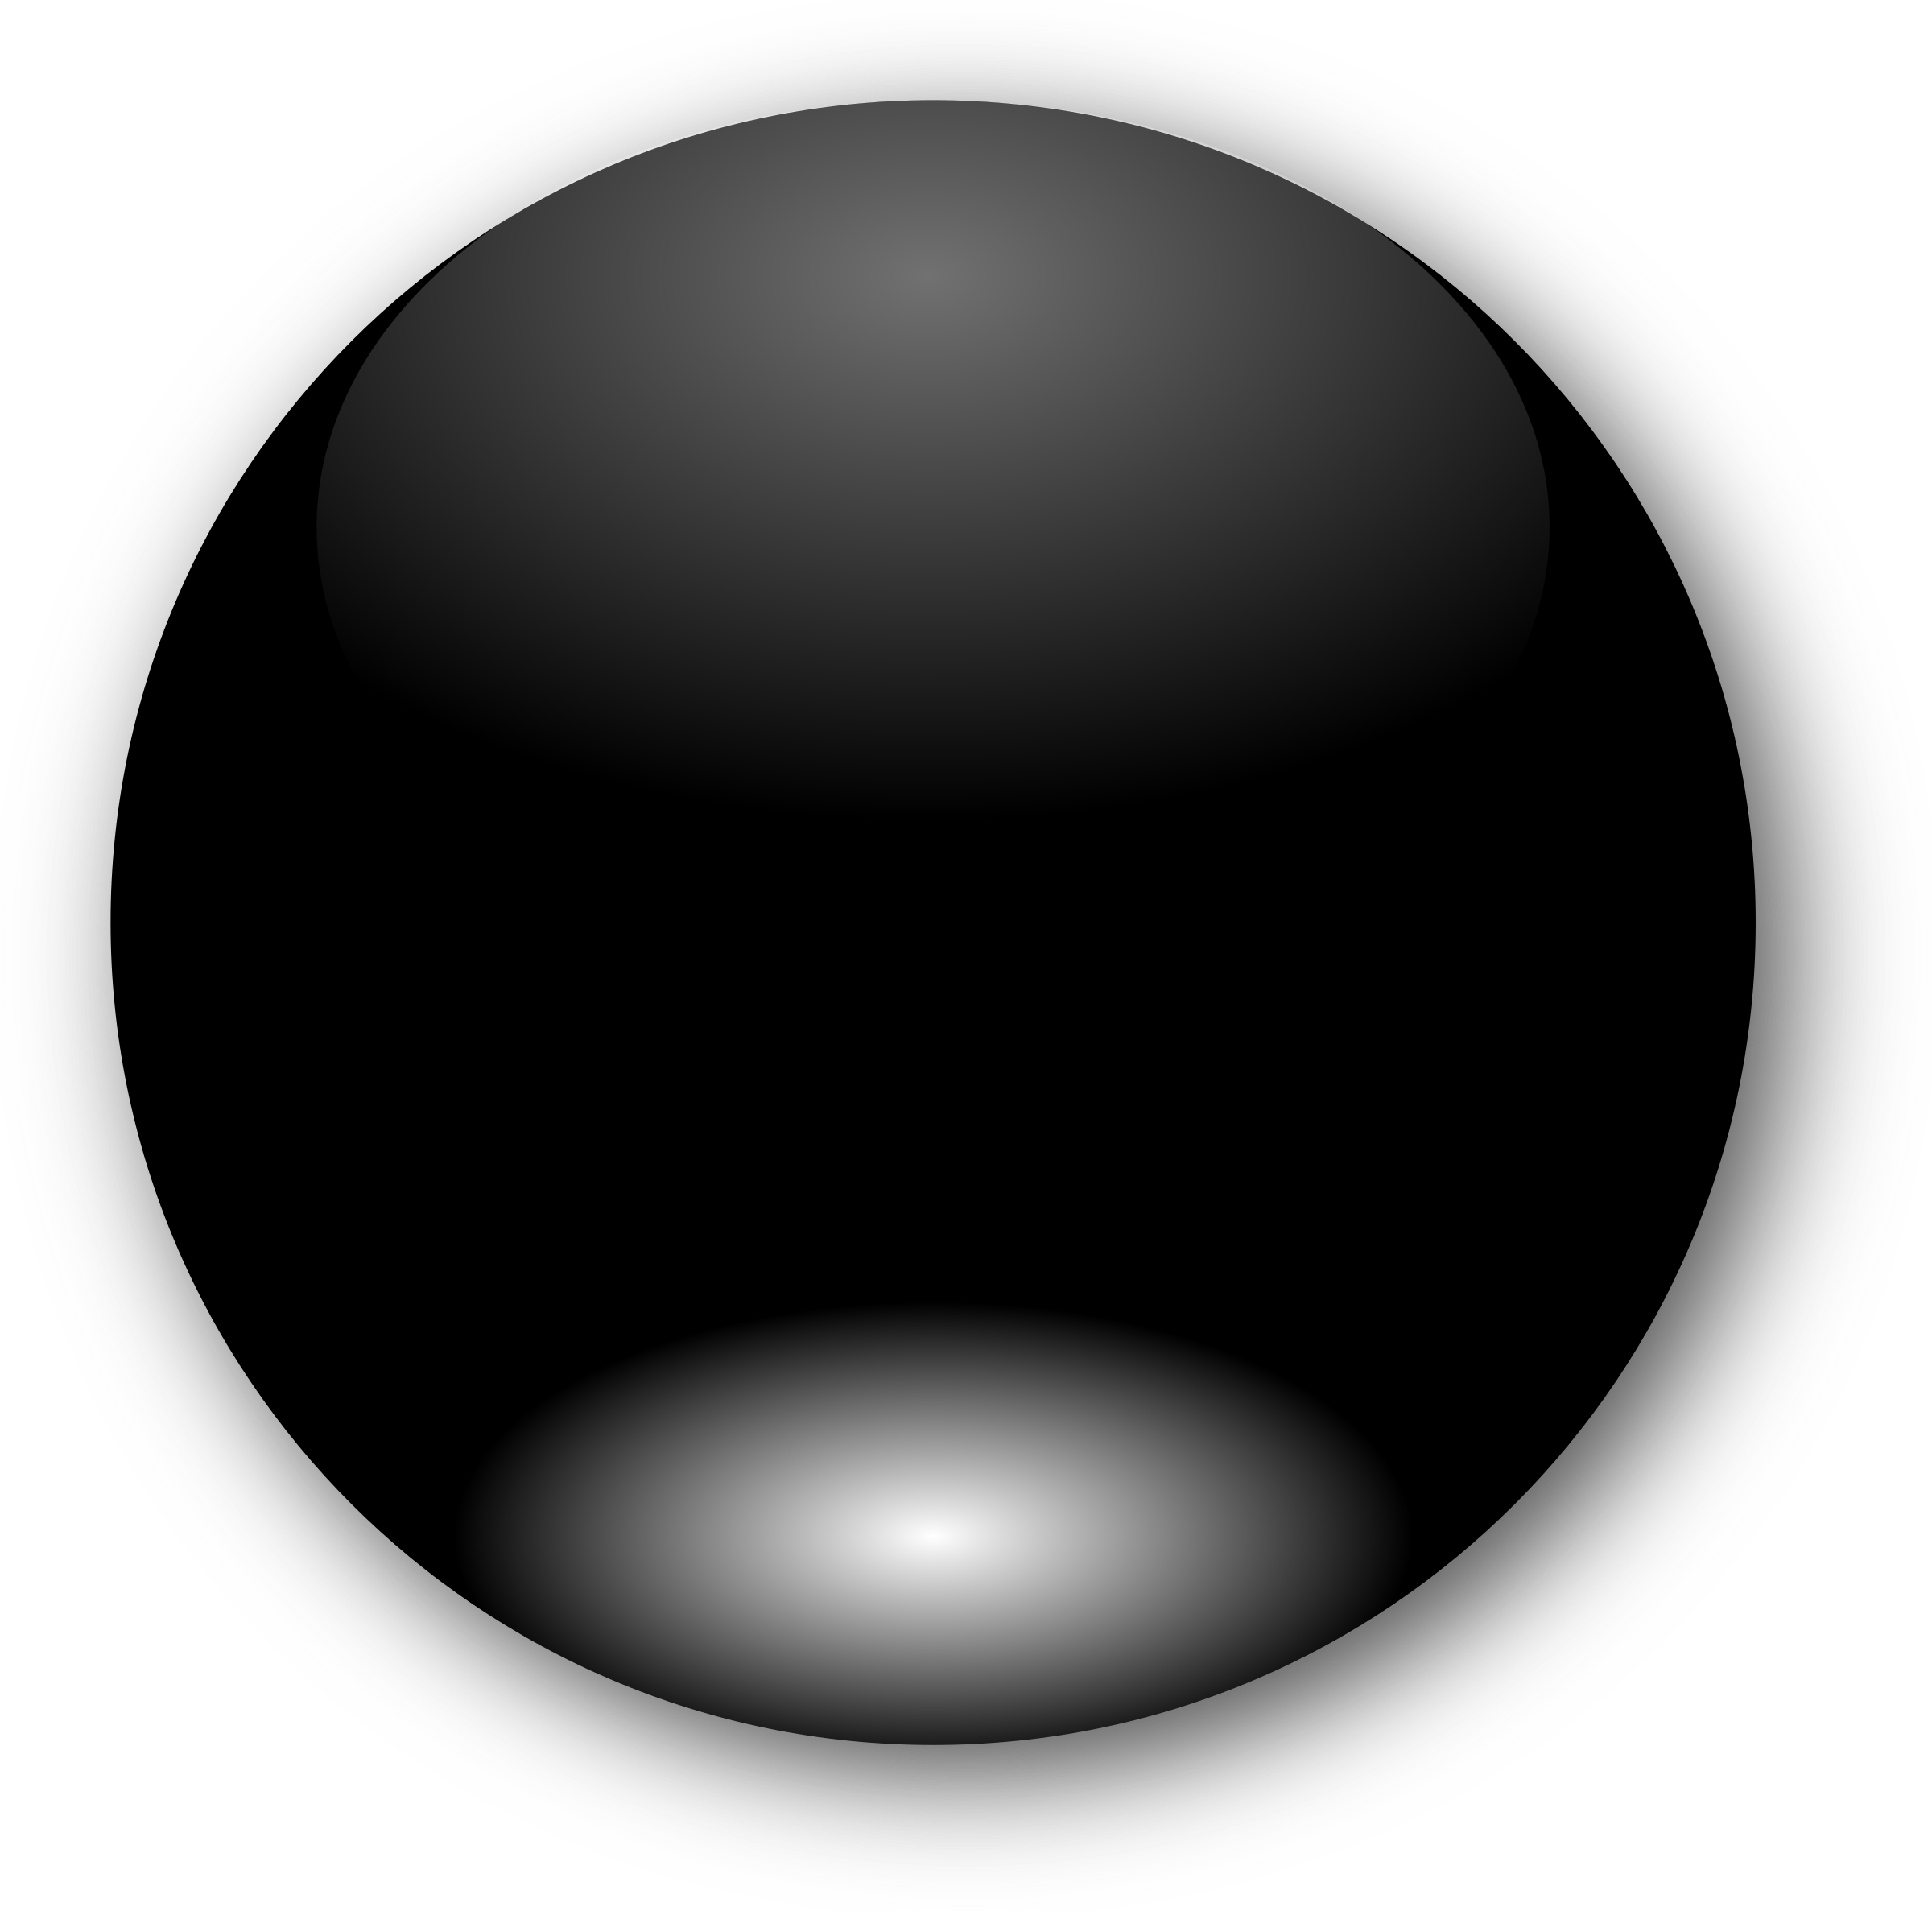 Black button png. Round icons free and